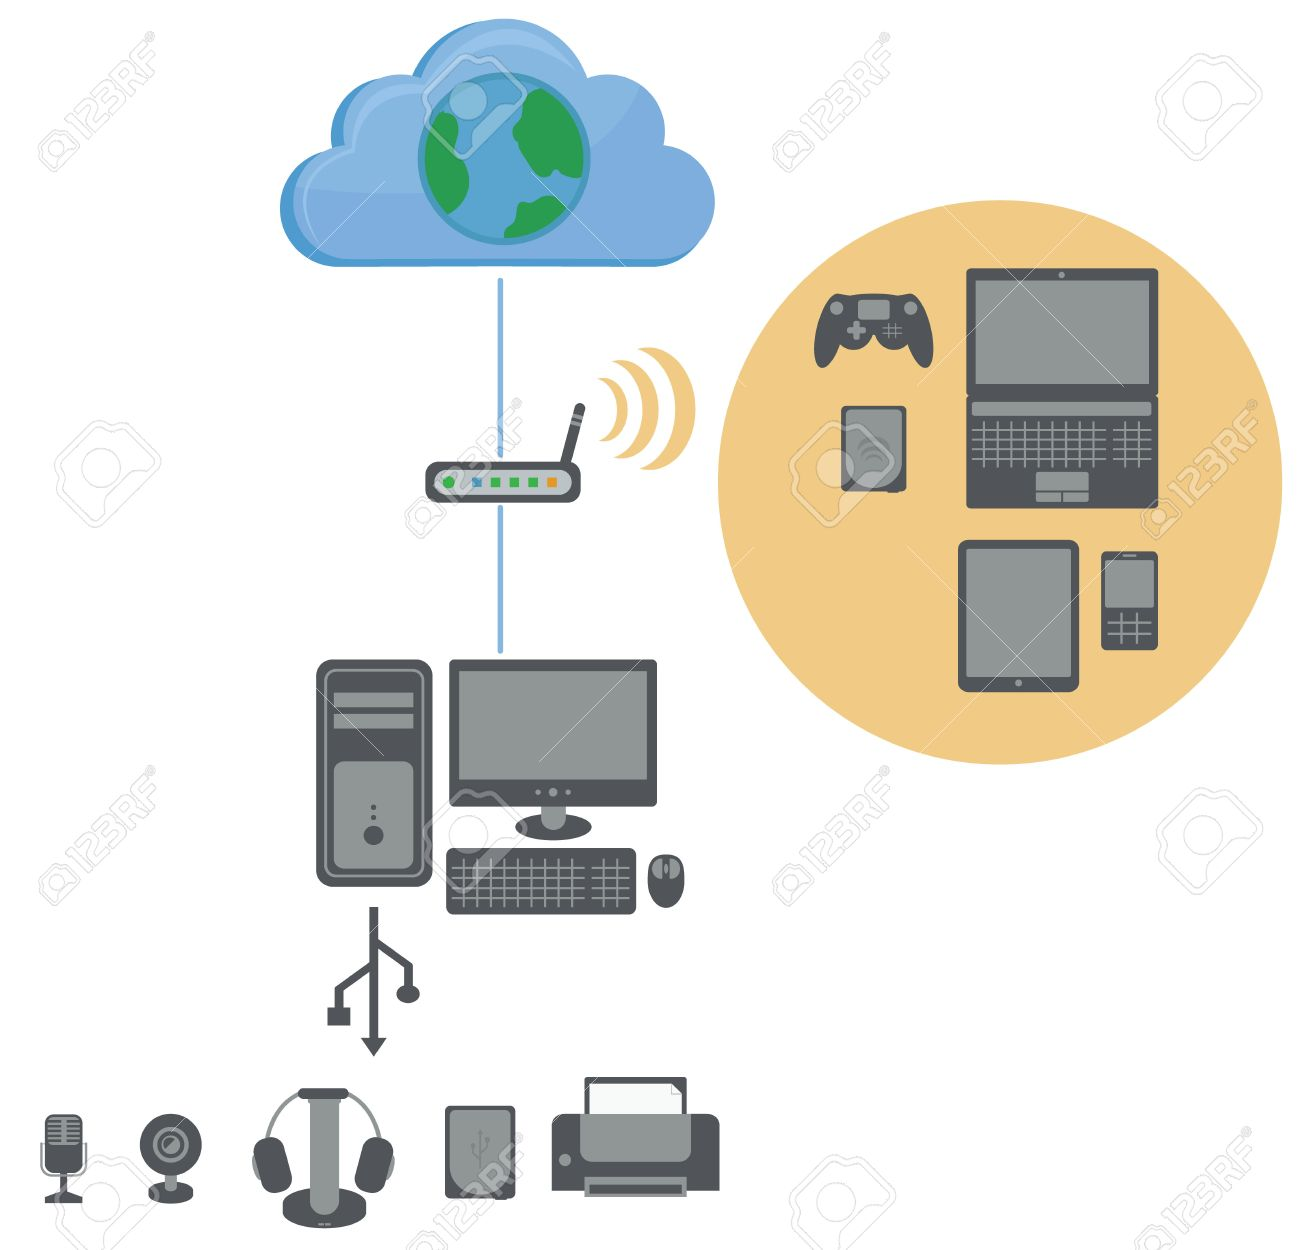 hight resolution of connection diagram to the internet contains wifi router personal computer usb devices and